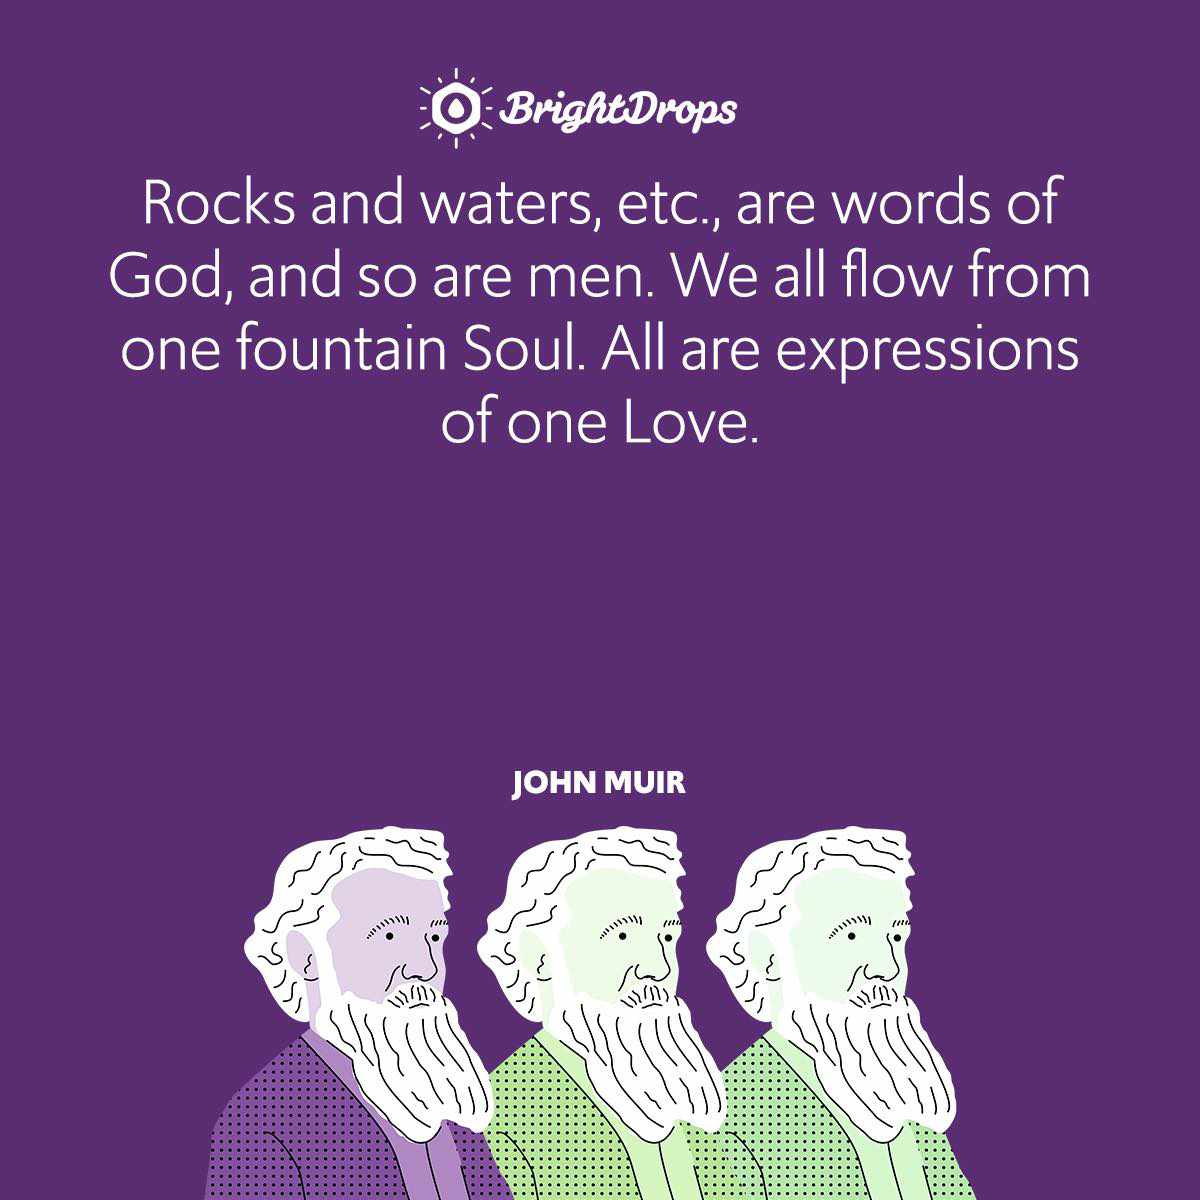 Rocks and waters, etc., are words of God, and so are men. We all flow from one fountain Soul. All are expressions of one Love.